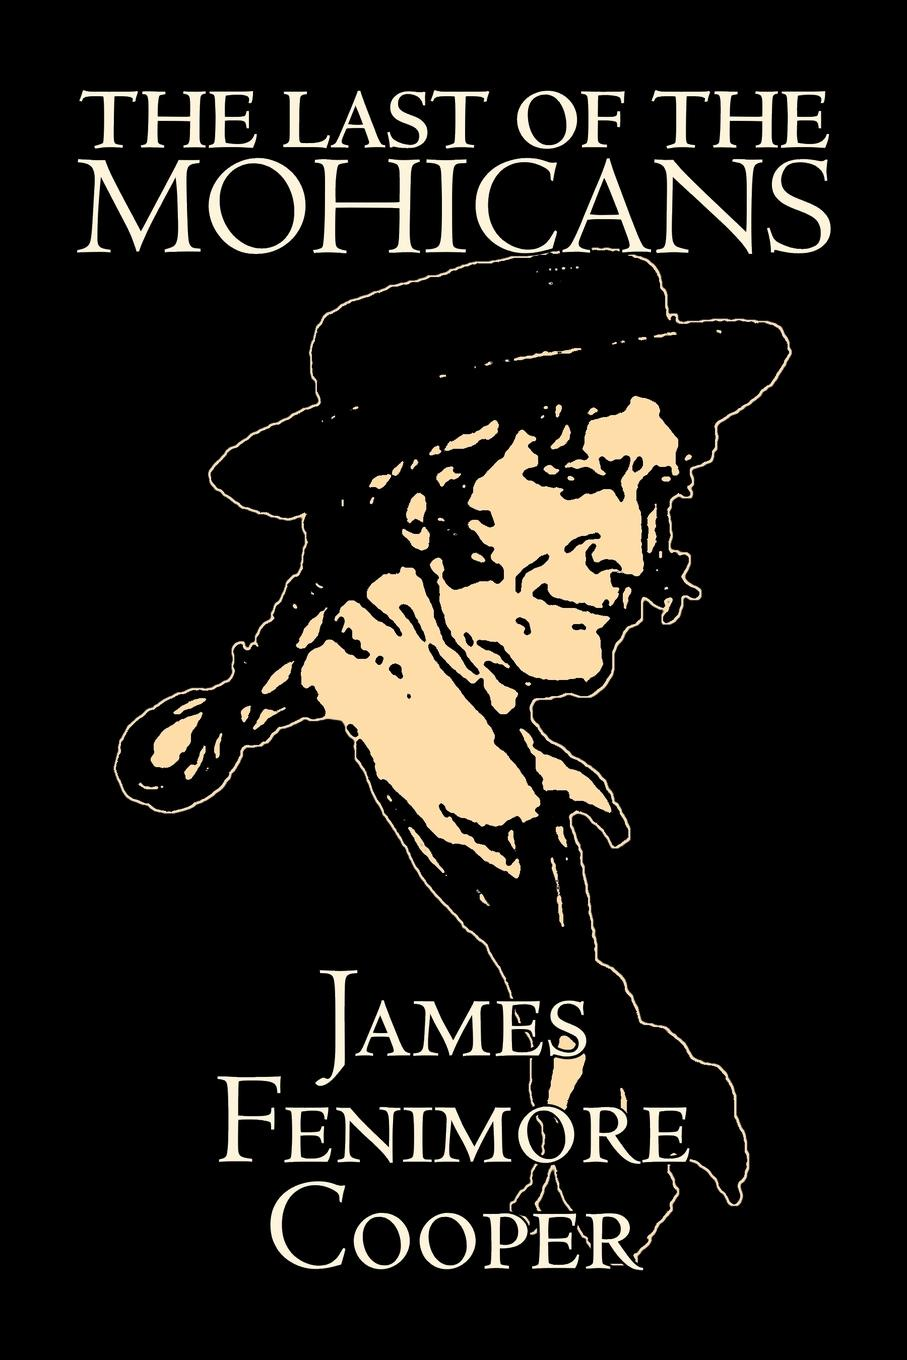 James Fenimore Cooper Last of the Mohicans by James Fenimore Cooper, Fiction, Classics, Historical, Action & Adventure cooper j the last of the mohicans